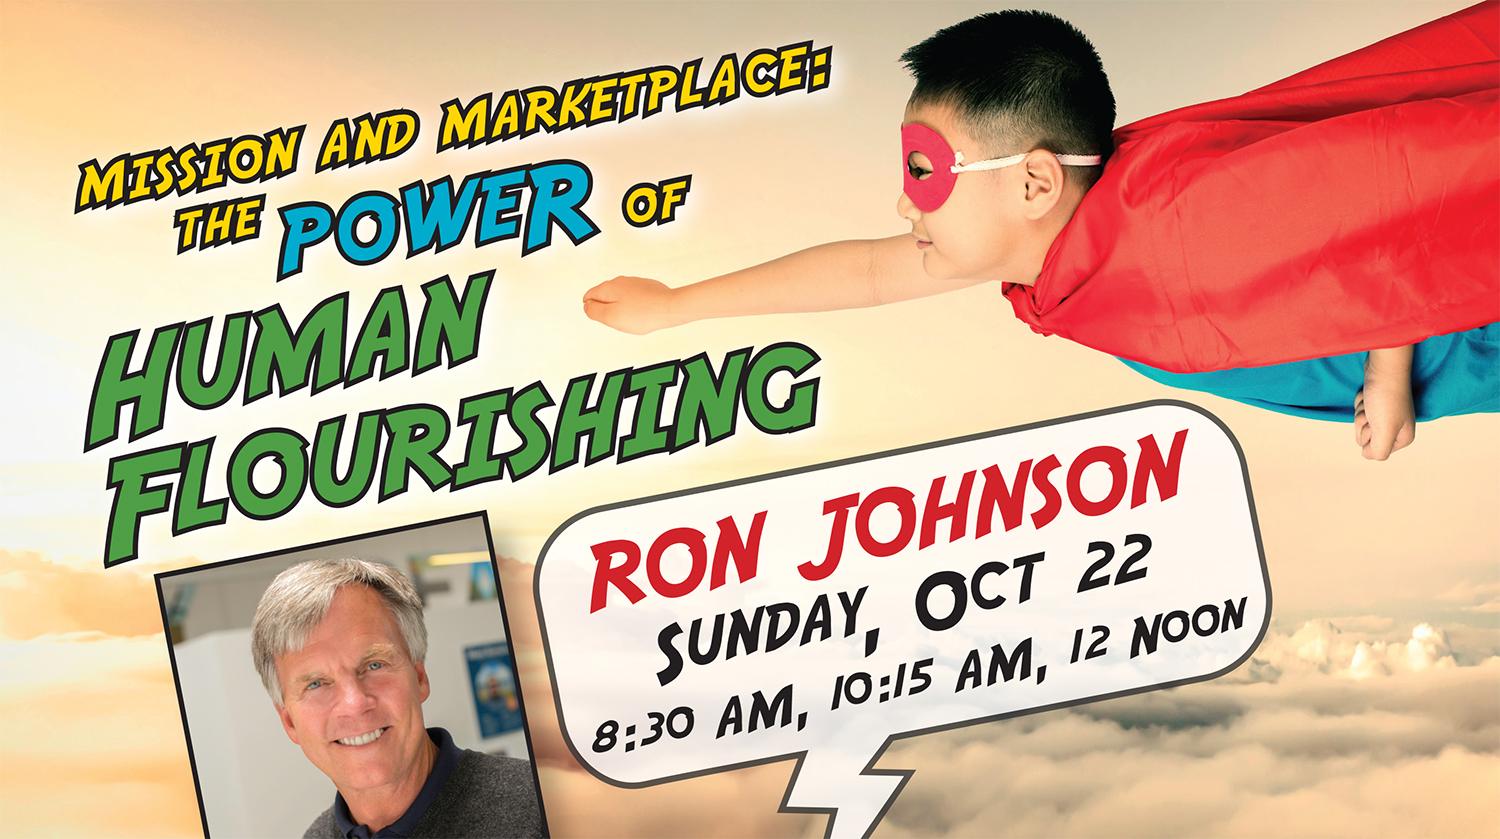 RonJohnson_Web_Events2.jpg